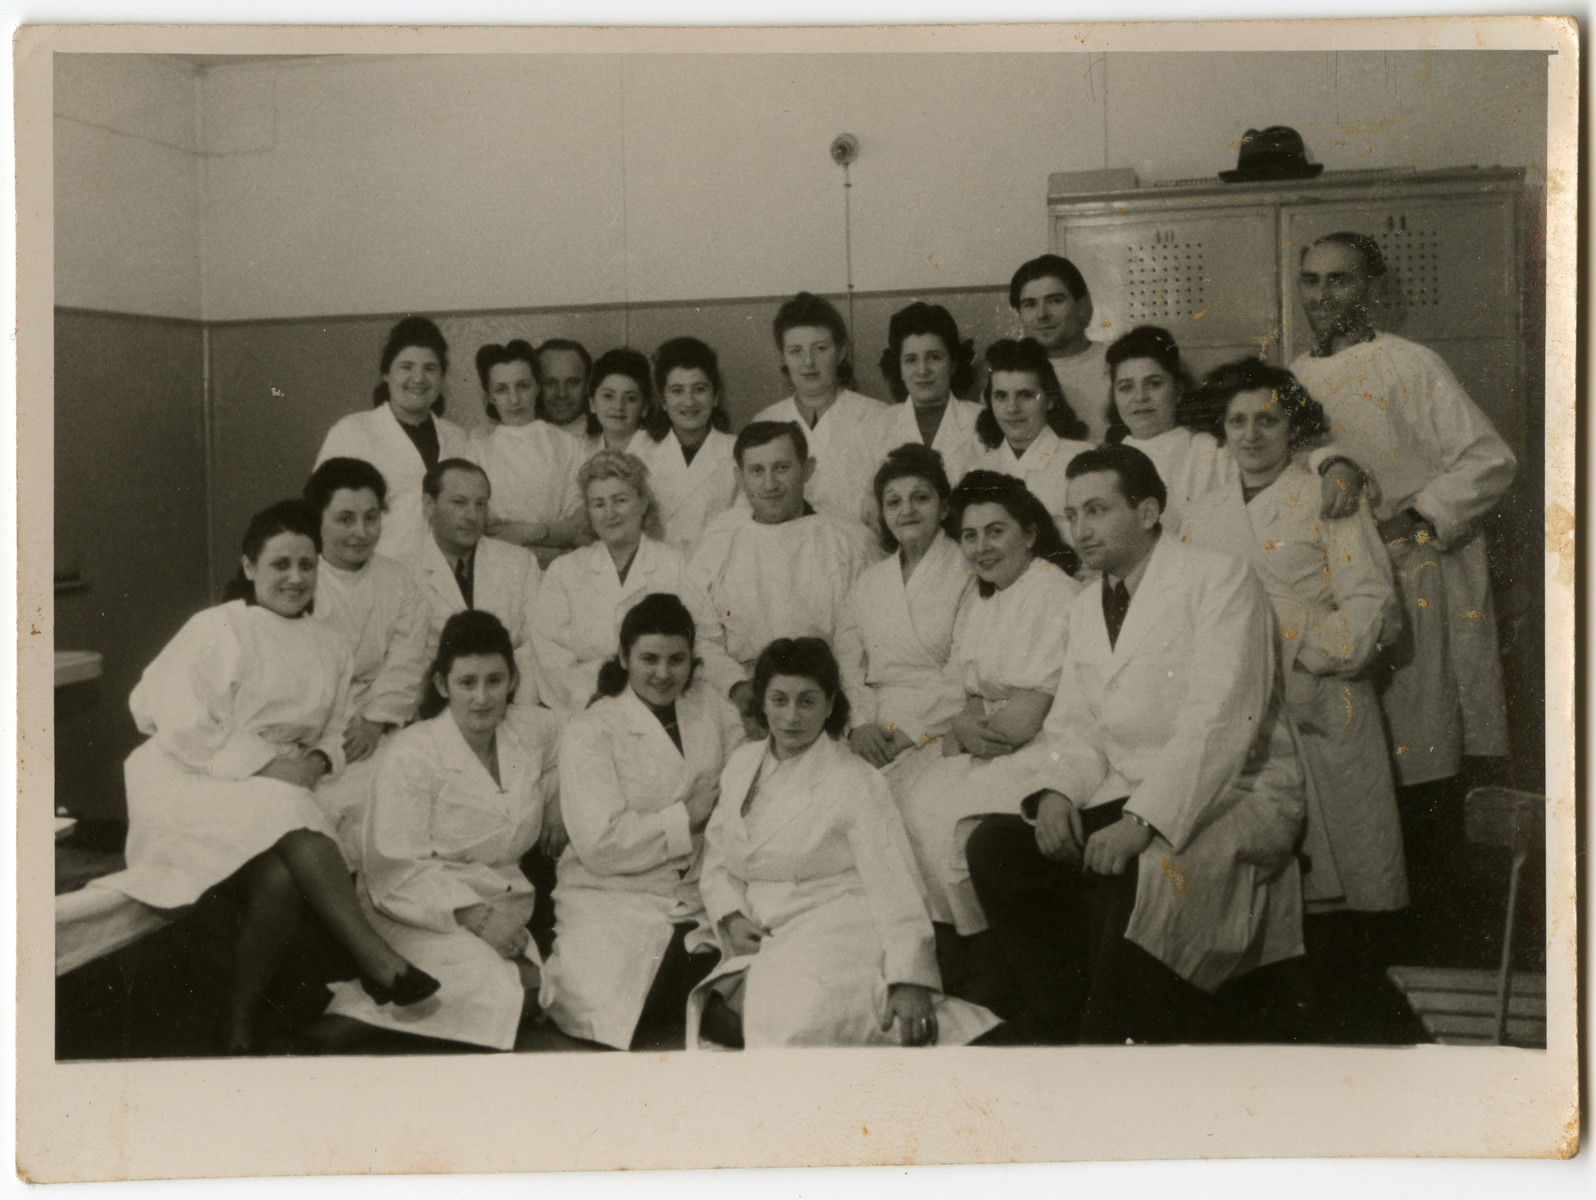 Group portrait of the physicians and nurses in the hospital of the Schlachtensee displaced persons' camp.  Among those pictured are Alfred Kimmel (chief physician) second row, third from left.